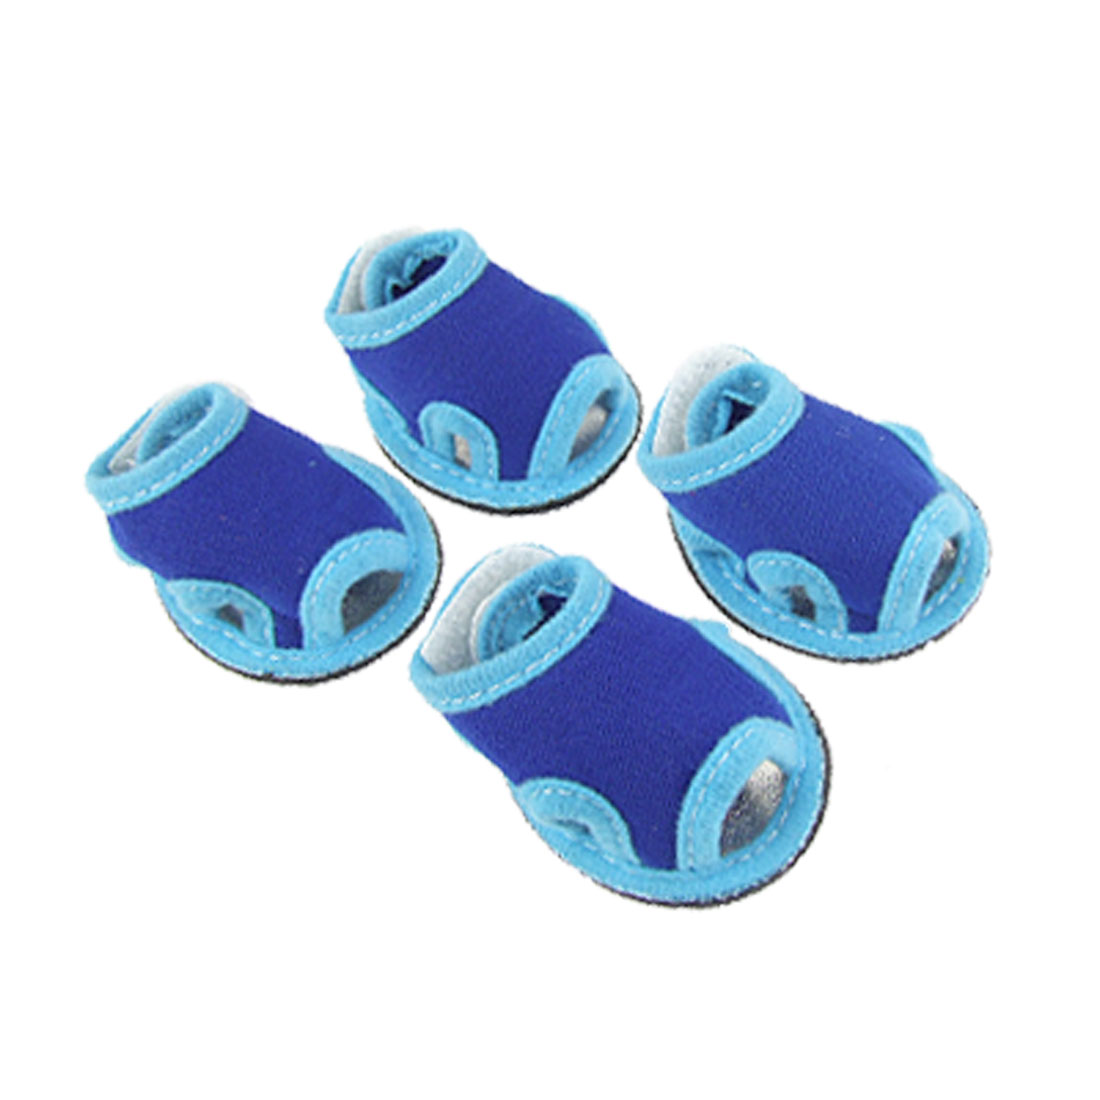 4 Pcs Pet Doggie Detachable Closure Sandals Shoes Blue Size 1